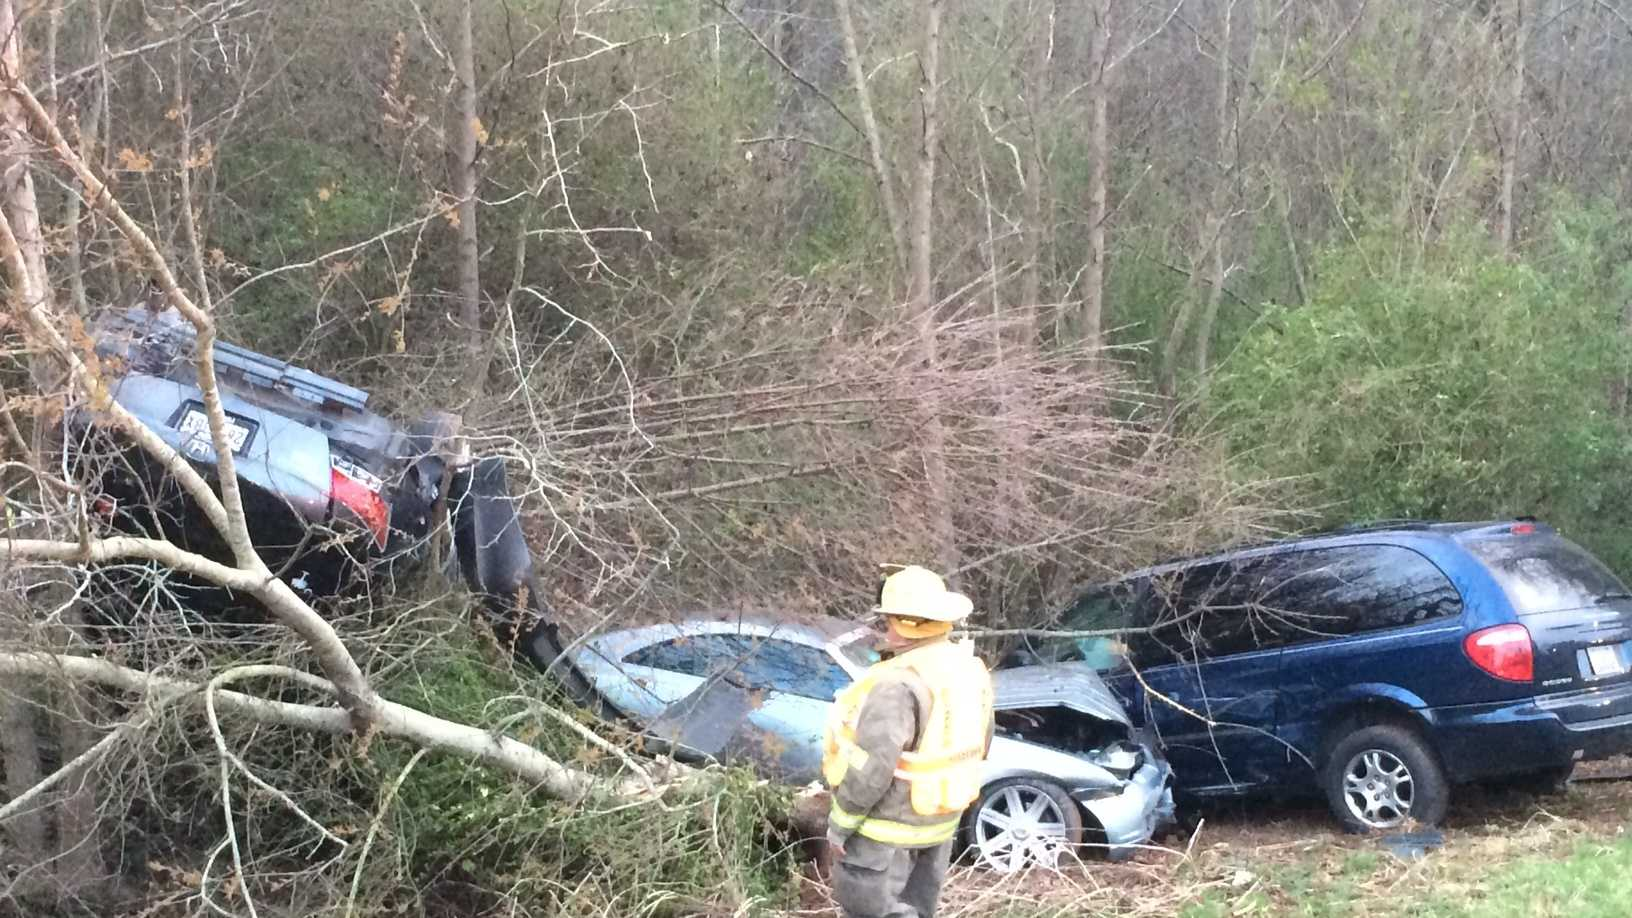 The South Carolina Highway Patrol is investigating a crash involving three cars and three injuries.